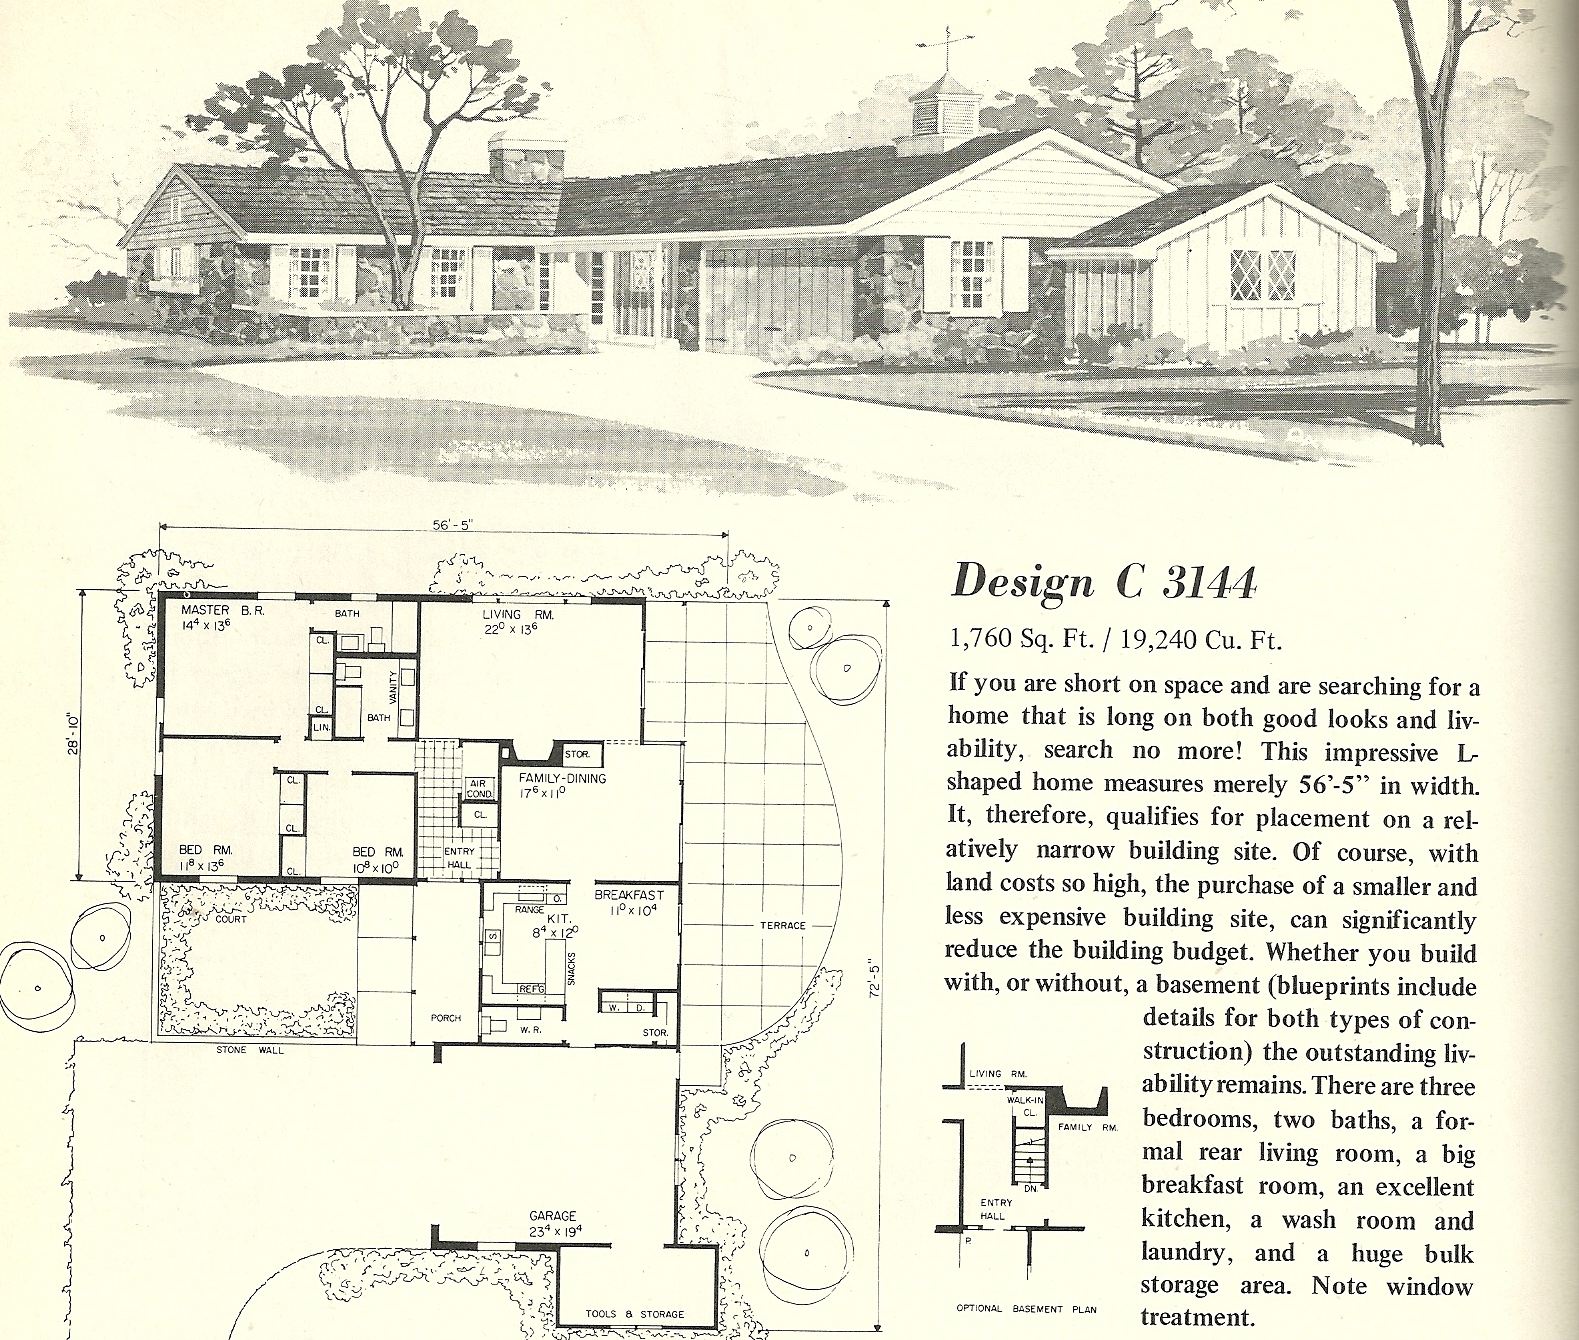 Vintage house plans 3144 antique alter ego - T shaped house plans ...